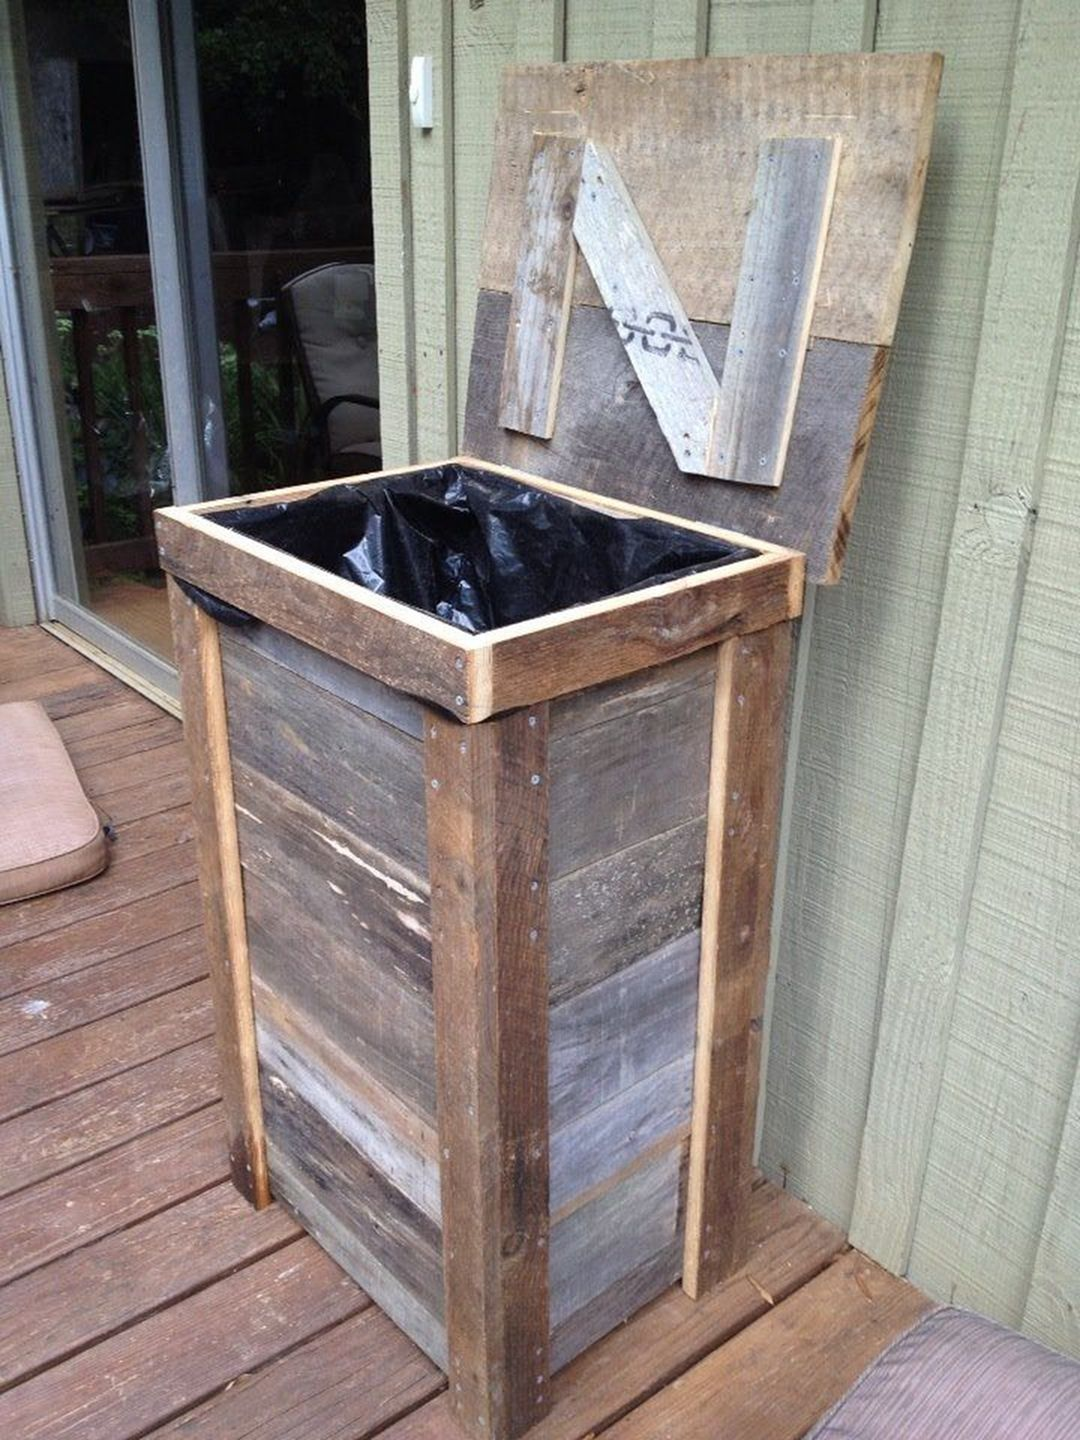 Pin By Ryan Beckstead On Trash Cans Rustic Outdoor Kitchens